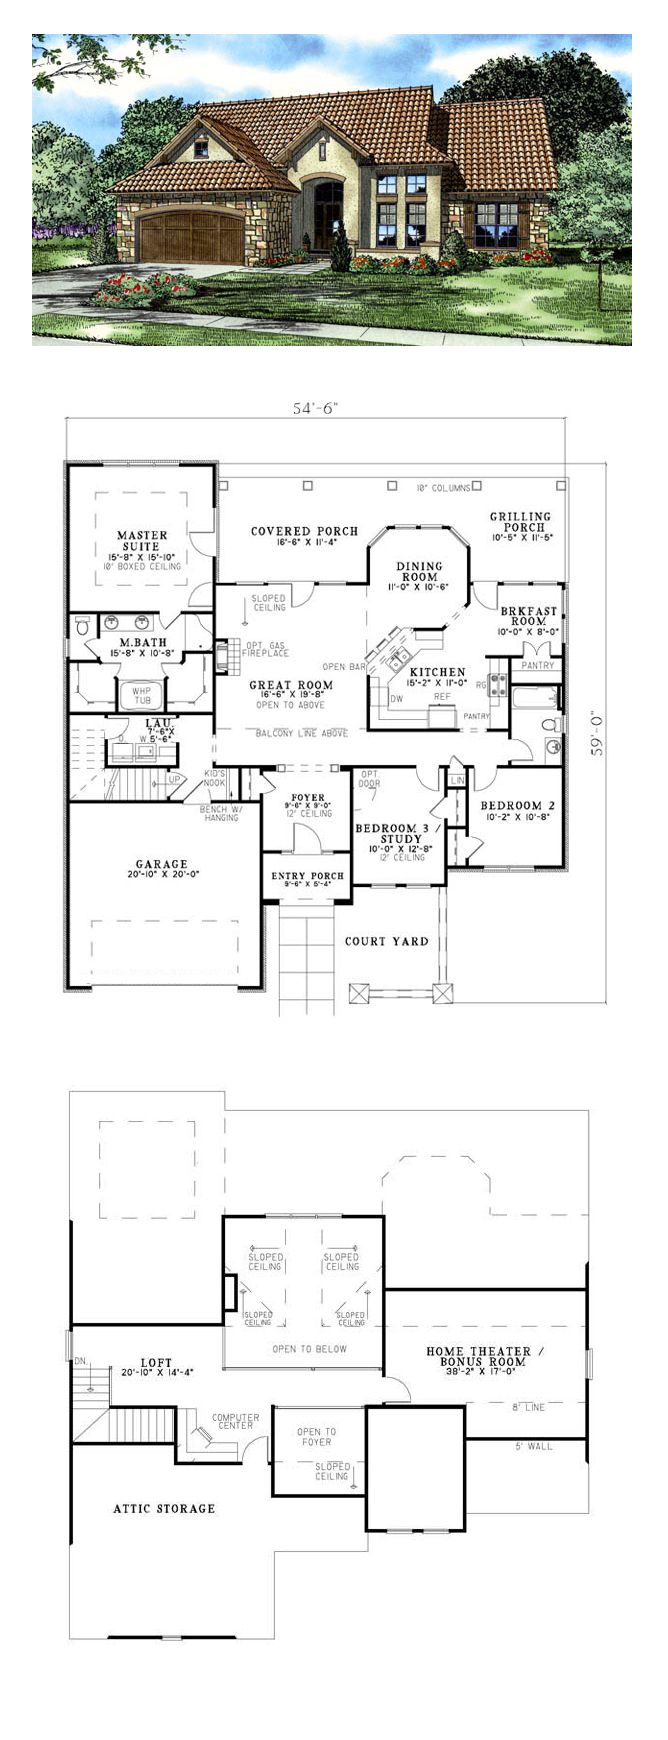 Tuscan house plan 82120 total living area 2095 sq ft Tuscan home floor plans